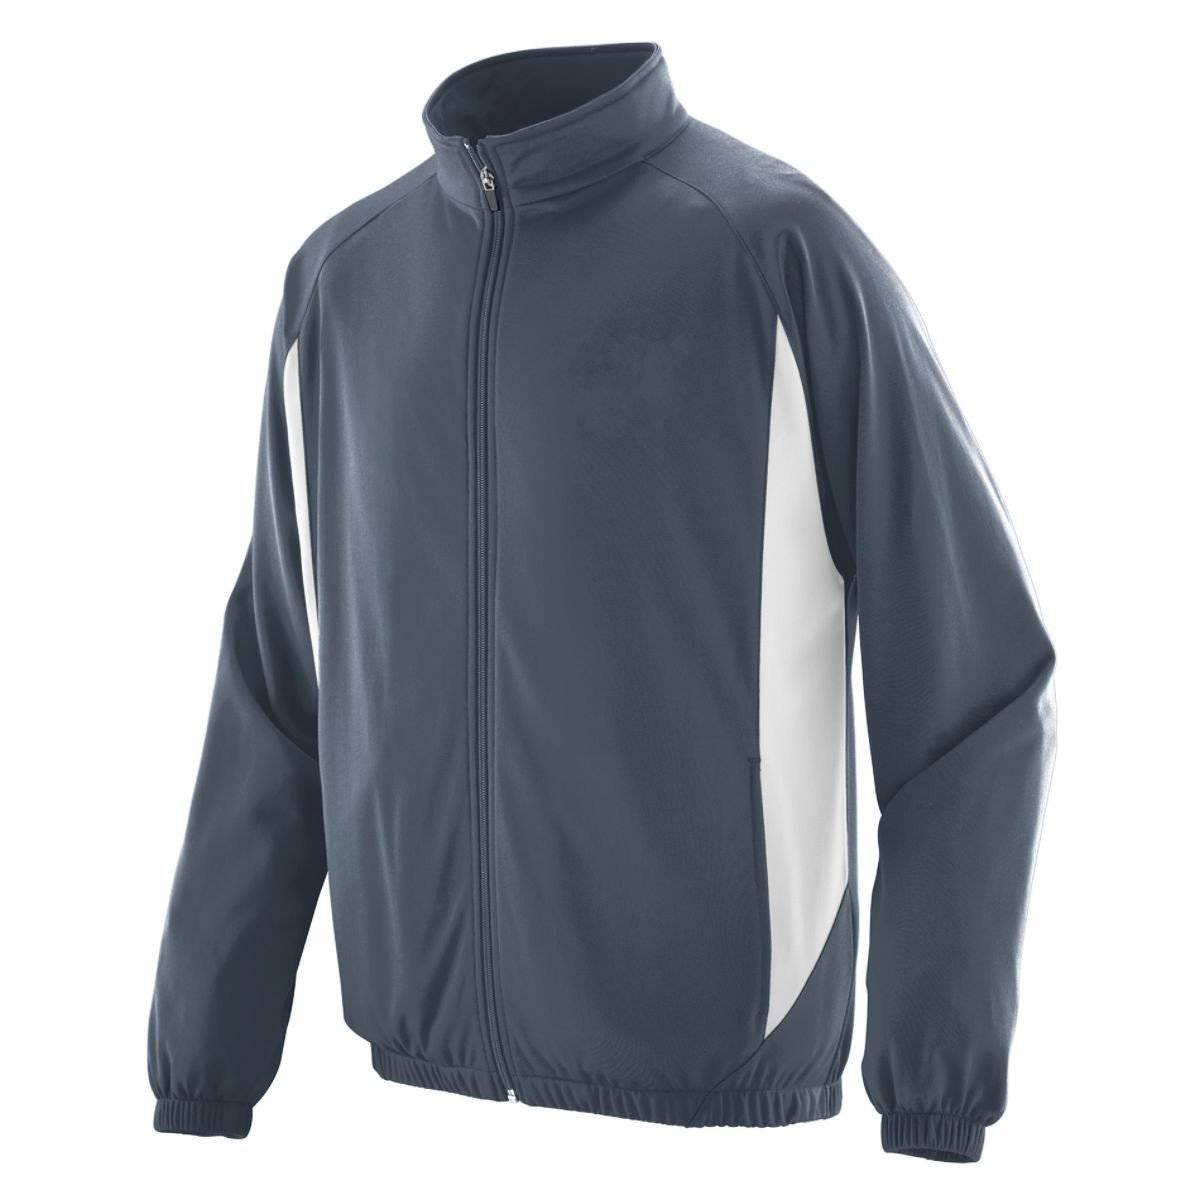 Augusta 4391 Medalist Jacket - Youth - Dark Gray White - HIT A Double